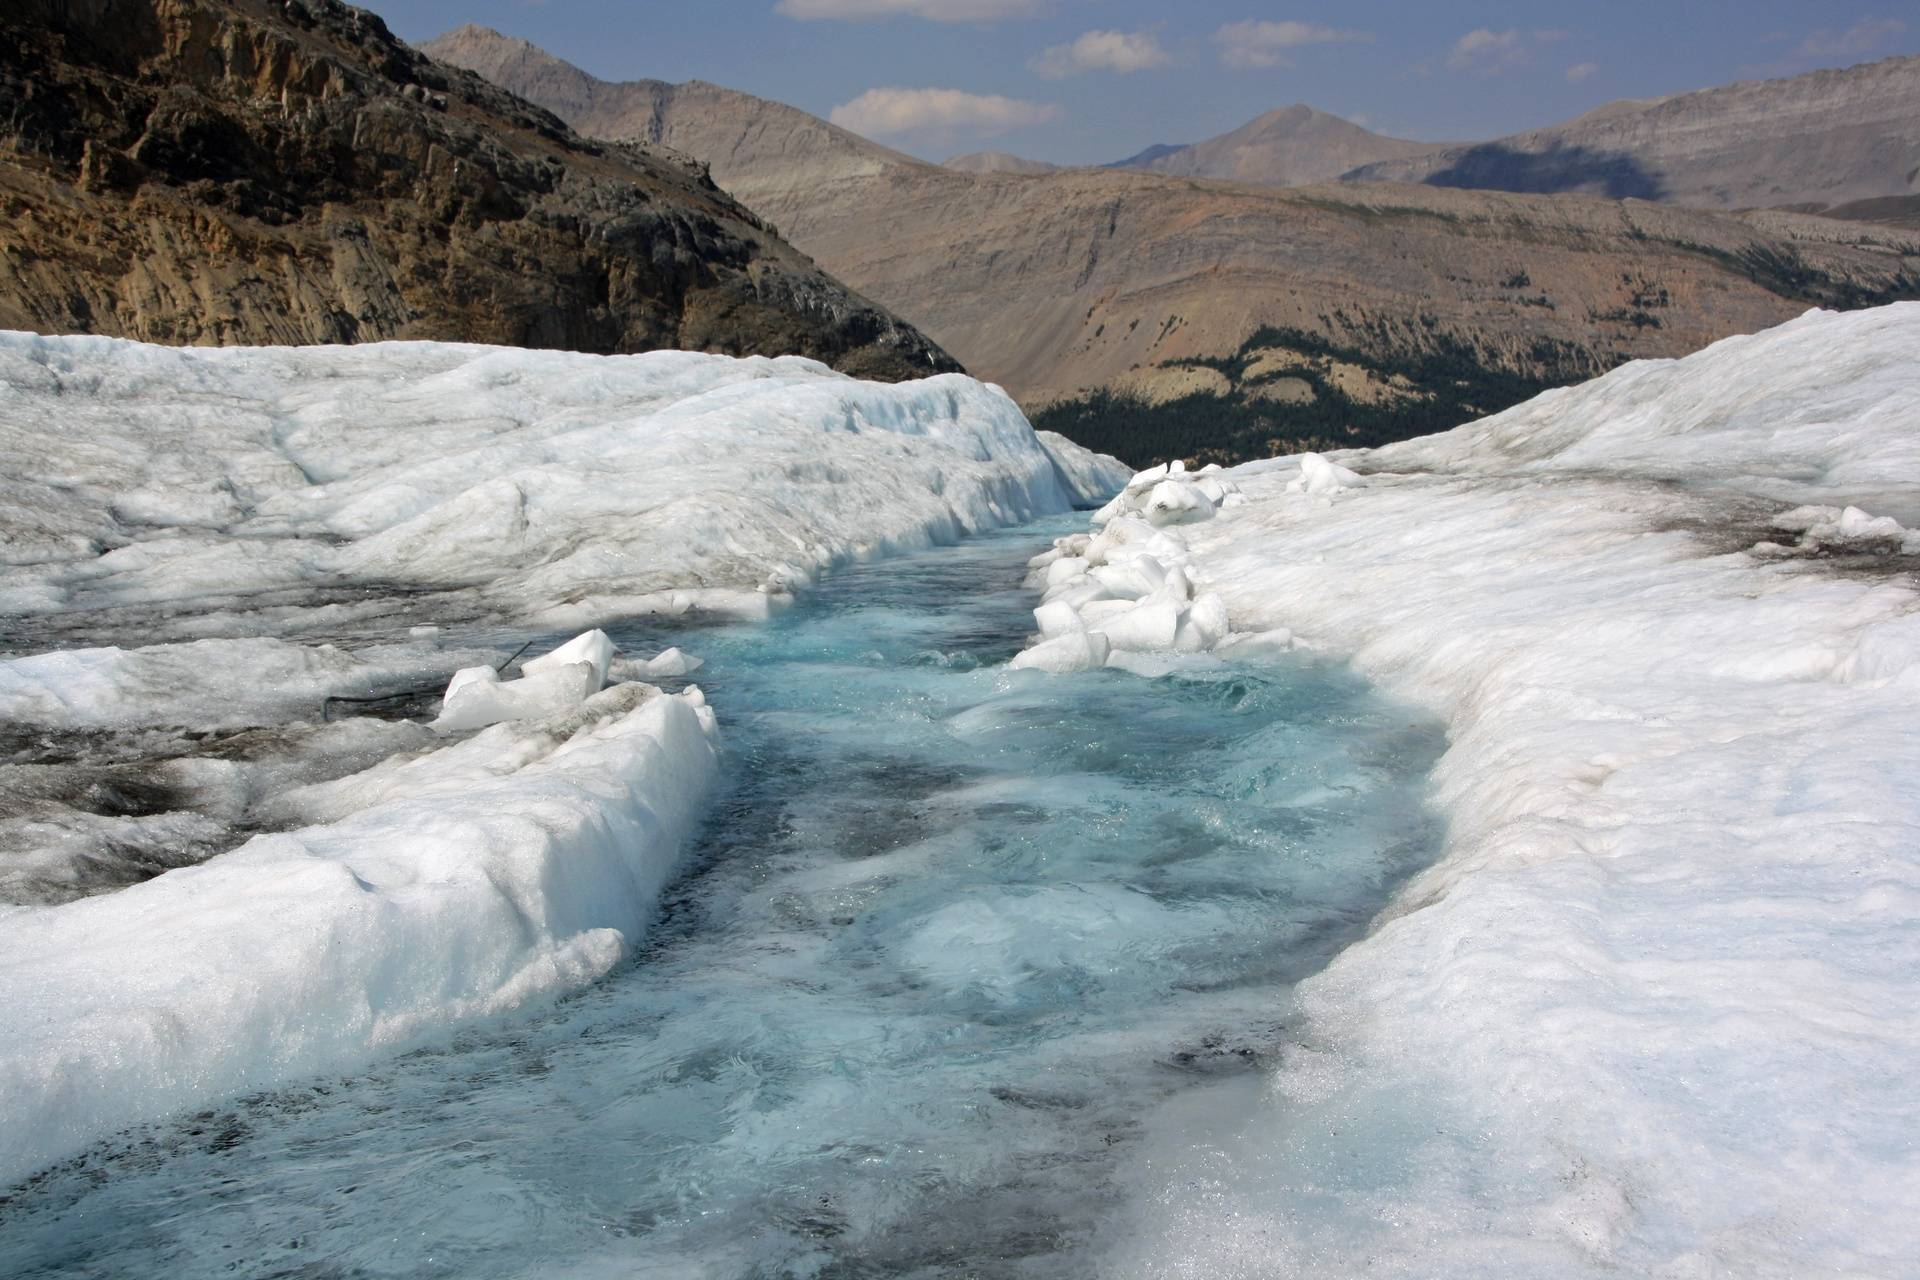 Stream from melt on Athabasca glacier